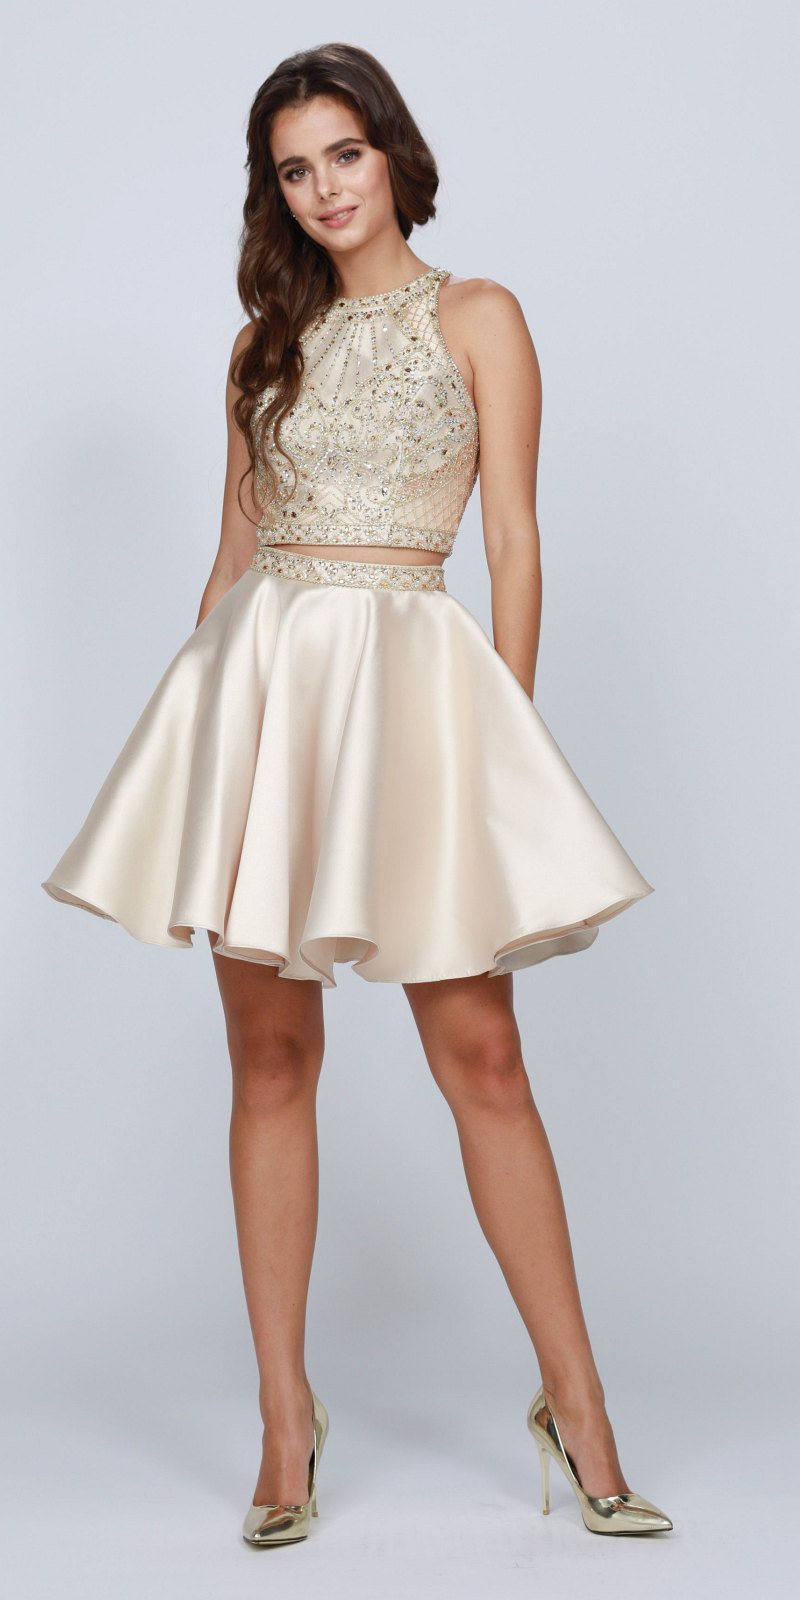 196da8803cf1 Champagne Two-Piece Homecoming Short Dress Cut-Out Back. Tap to expand